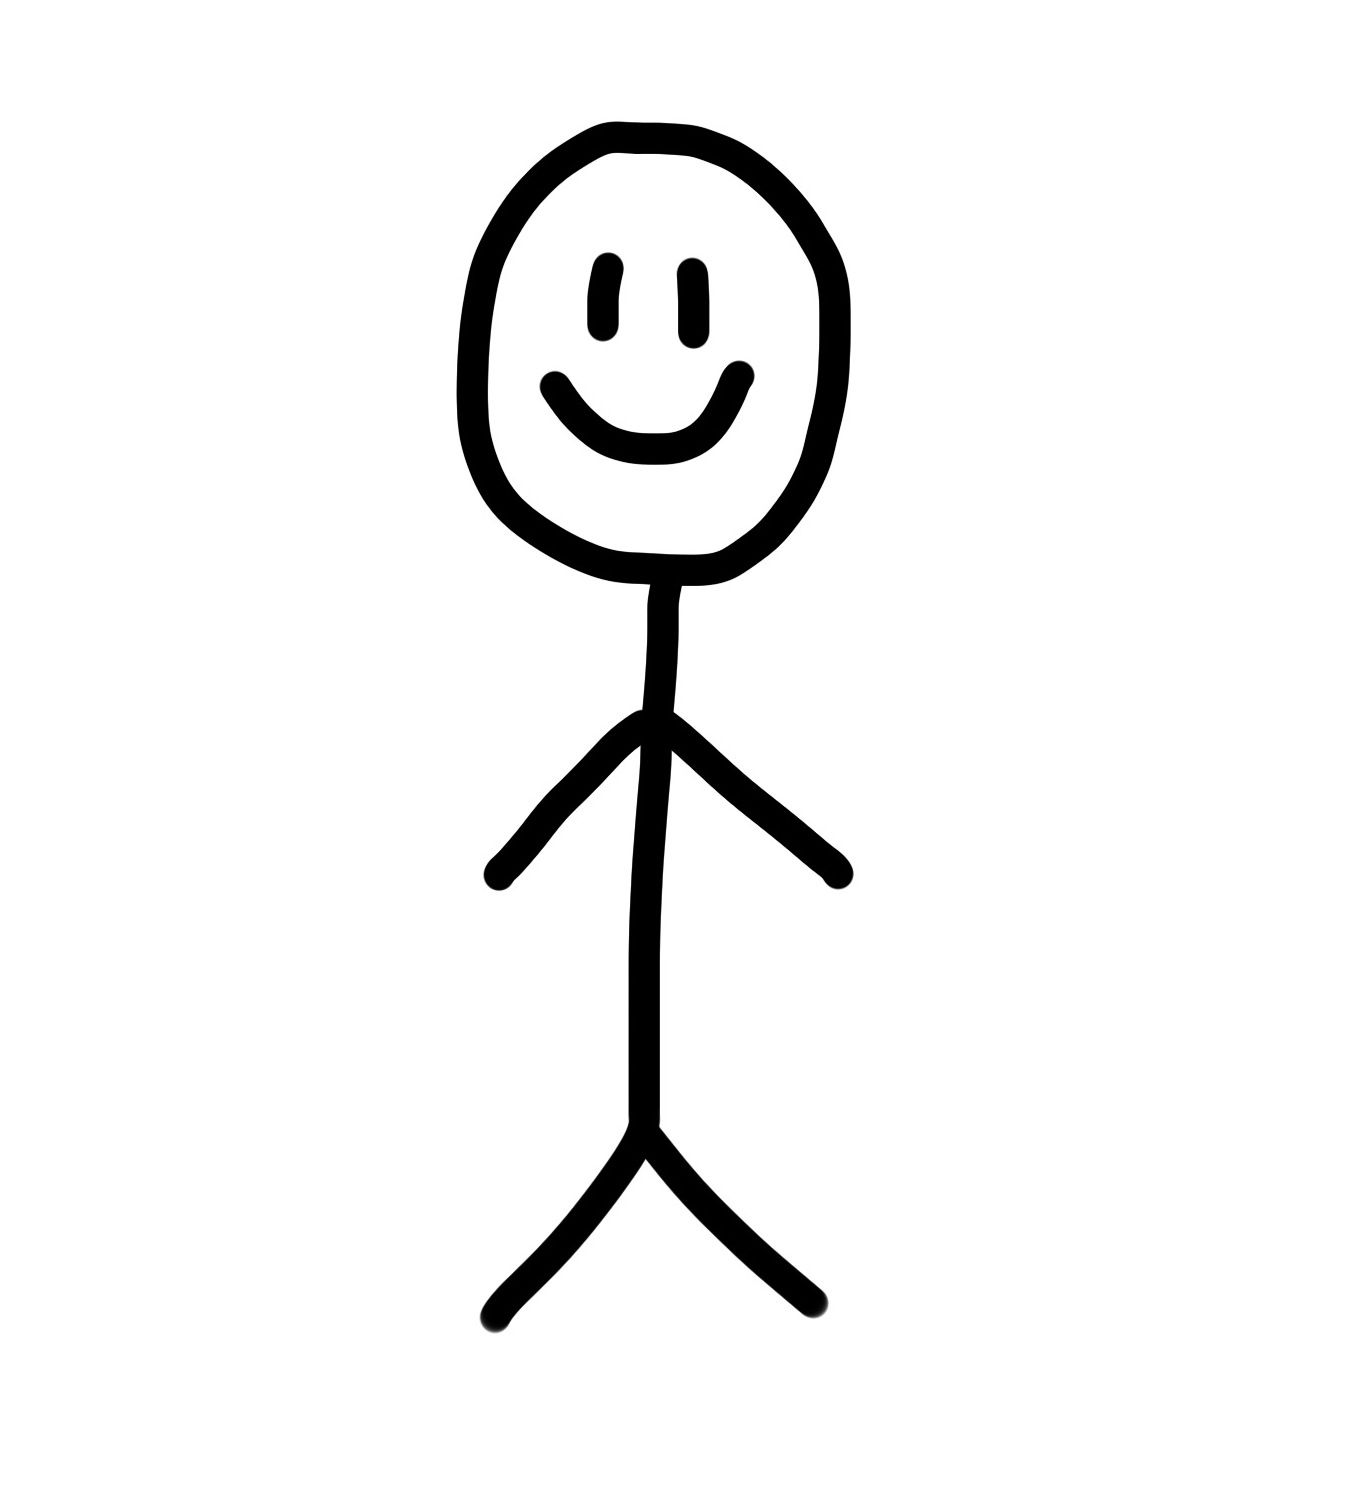 Pin on Stick Figures.